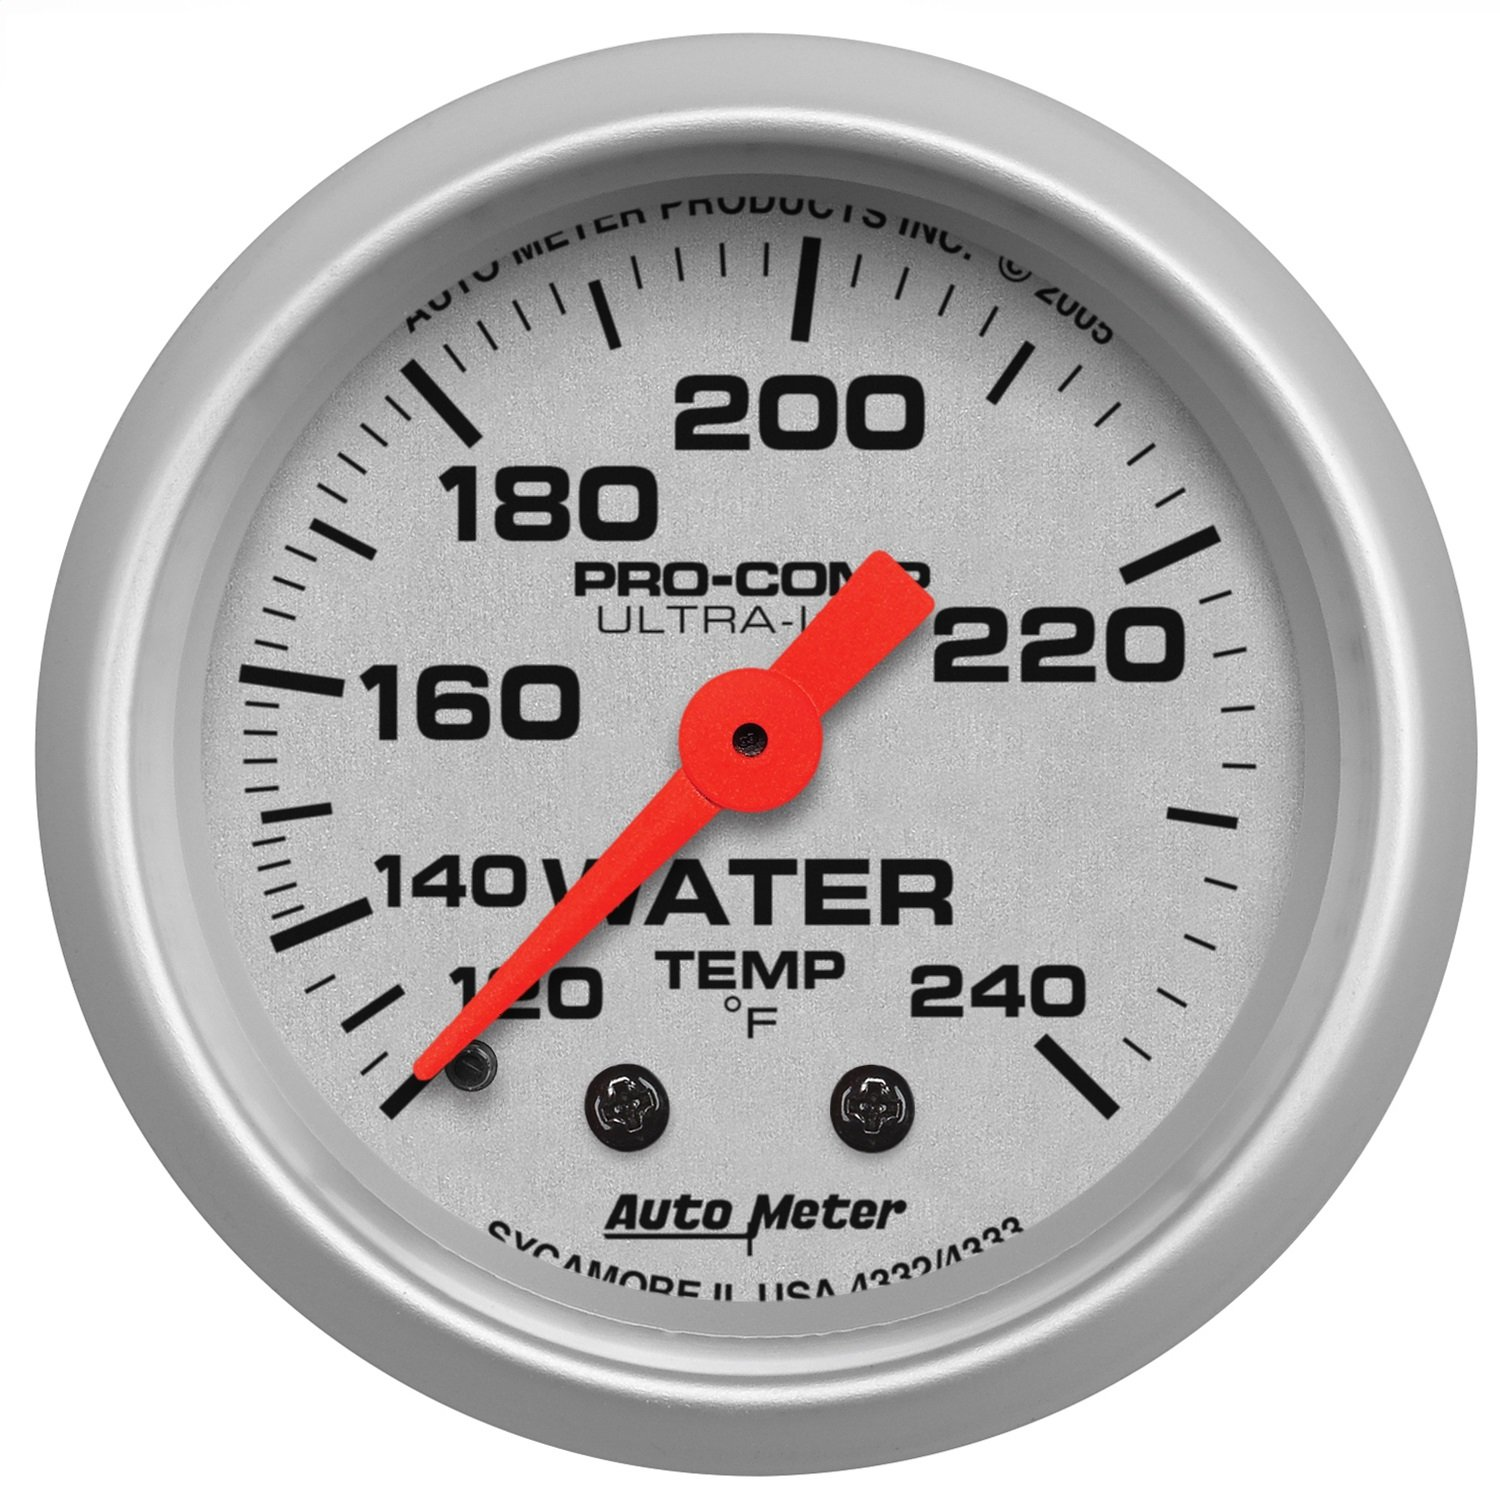 Auto Meter 4332 Ultra-Lite Mechanical Water Temperature Gauge by Auto Meter